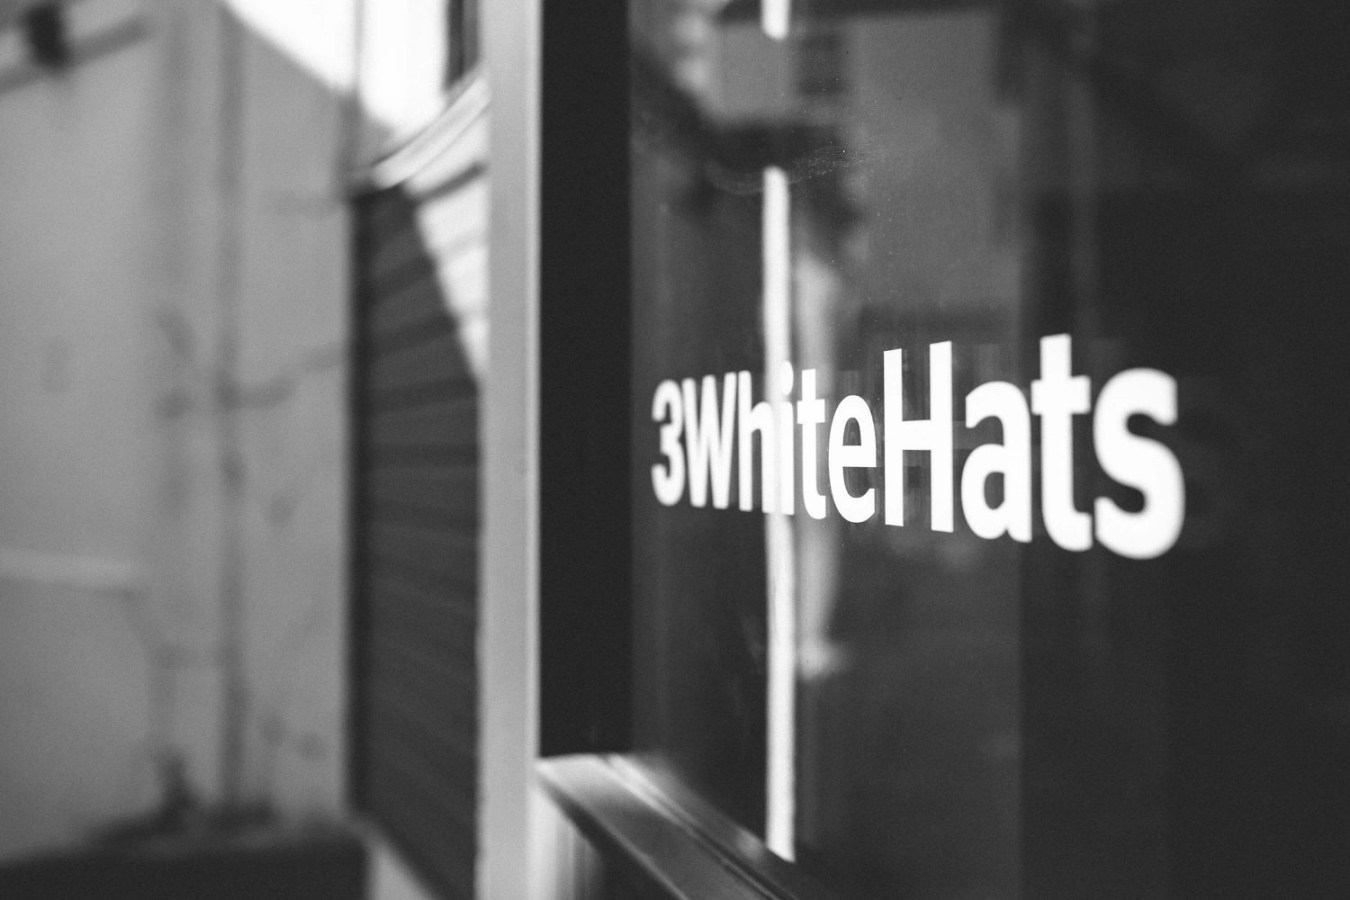 3 white hats building with logo on the window